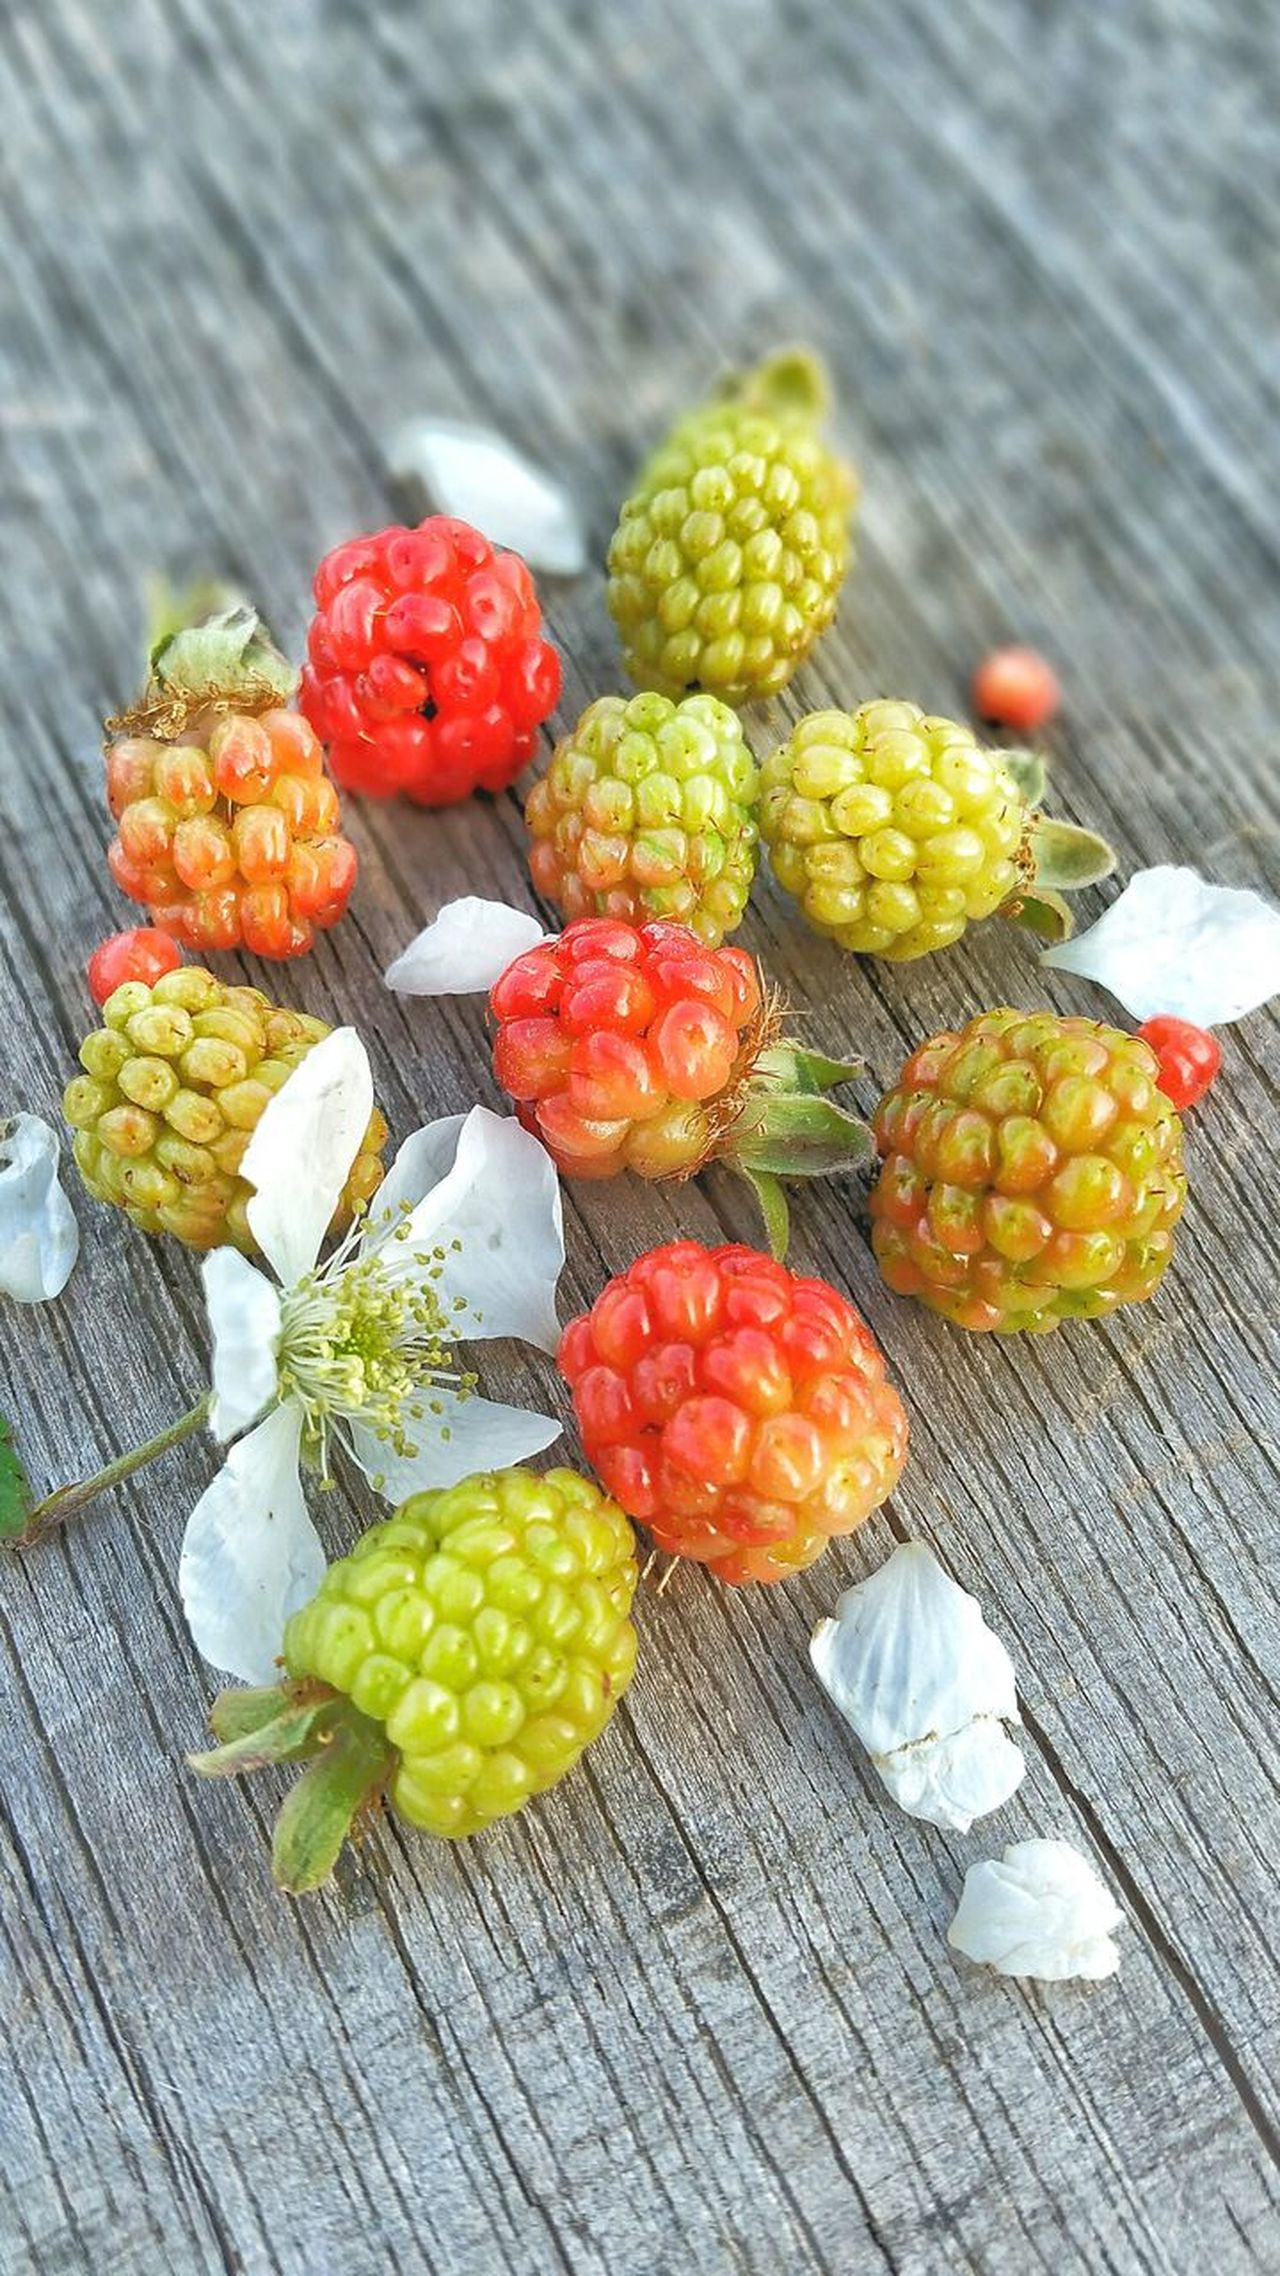 Fruit Food Close-up Variation Healthy Eating Outdoors Day Nature Flower Freshness Room For Copy Room For Text Backgrounds Wild Weathered Wood Unripe Blackberry Wild Blackberries Dew Berries Multi Colored Wild Berries Group Bunch Nature Ready-to-eat Visual Feast